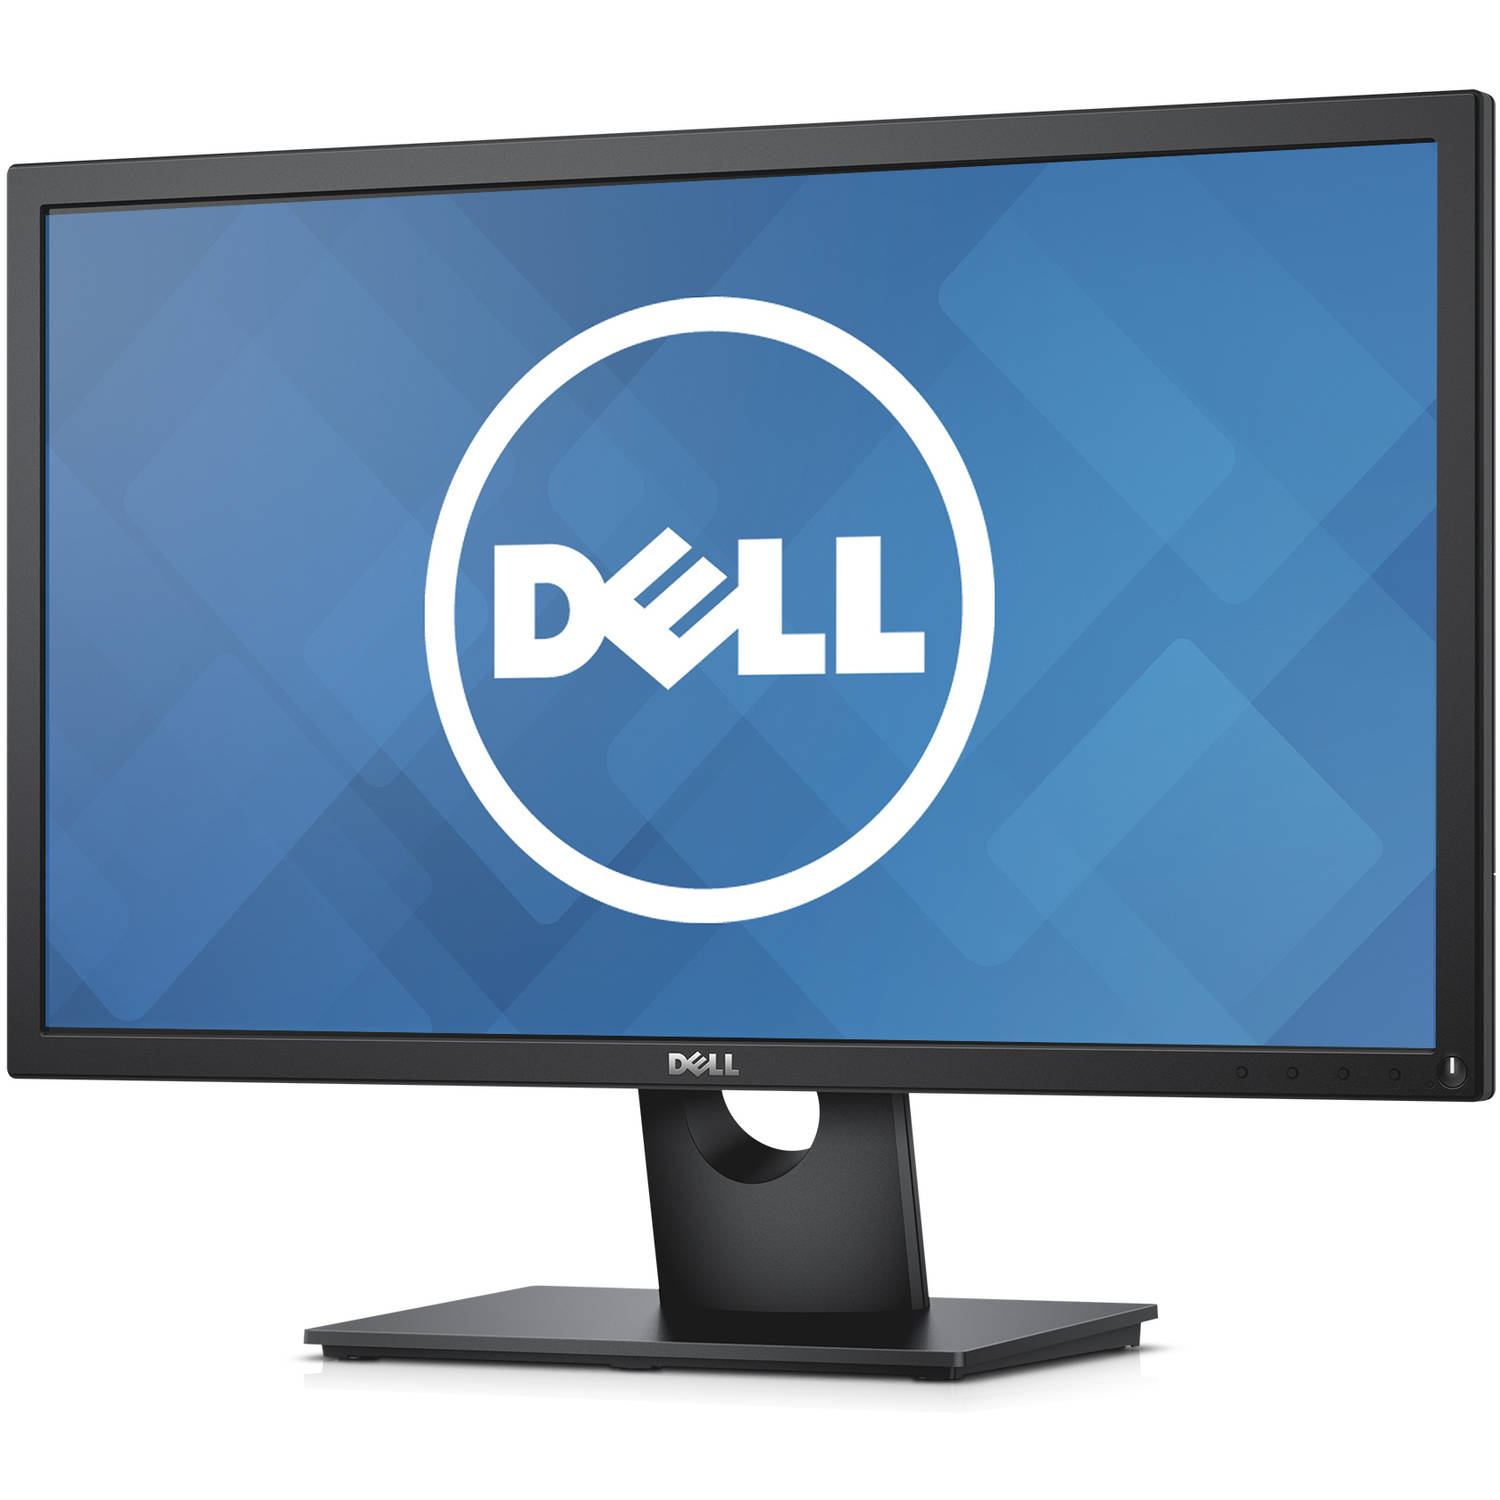 "Dell 22"" LED Widescreen Monitor (E2216Hvm Black)"